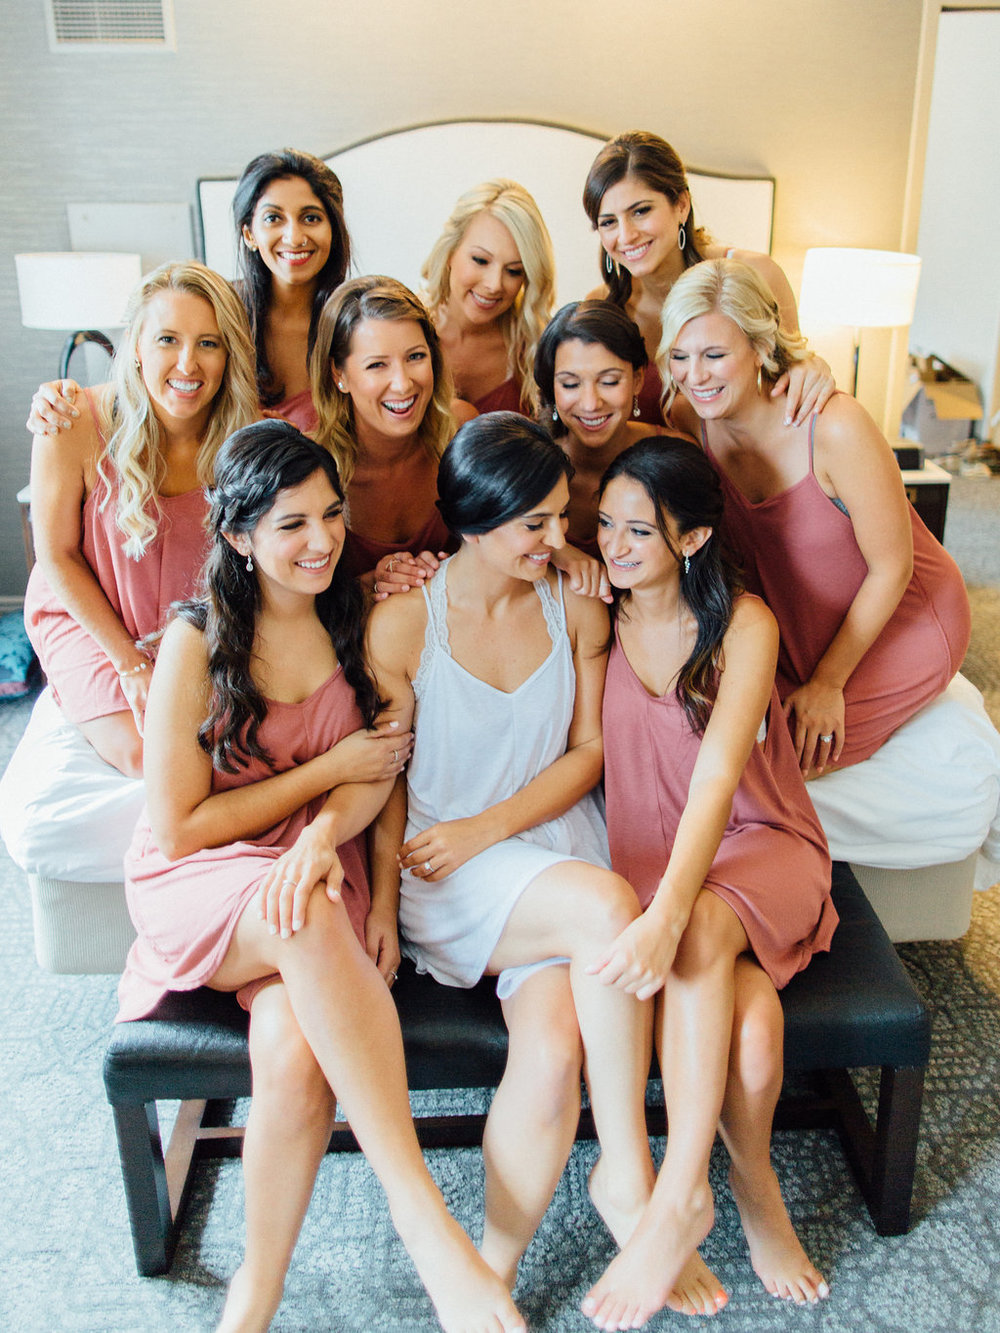 Photography:  Tim Tab Studios   | Coordination: The Simply Elegant Group,  Lindsay | Floral design:  The Bread and Butterfly | Decor:  Art of Imagination | Hair:  Holli Beauty | Makeup:  Joanna B Artistry  and  Anjelica Bannos  | Bride's gown:  Sarah Seven | Groom's tux:  The Black Tux | Bridesmaids:   Show Me Your MuMu  | Venue:  Bridgeport Art Center  | Catering:  Limelight Catering